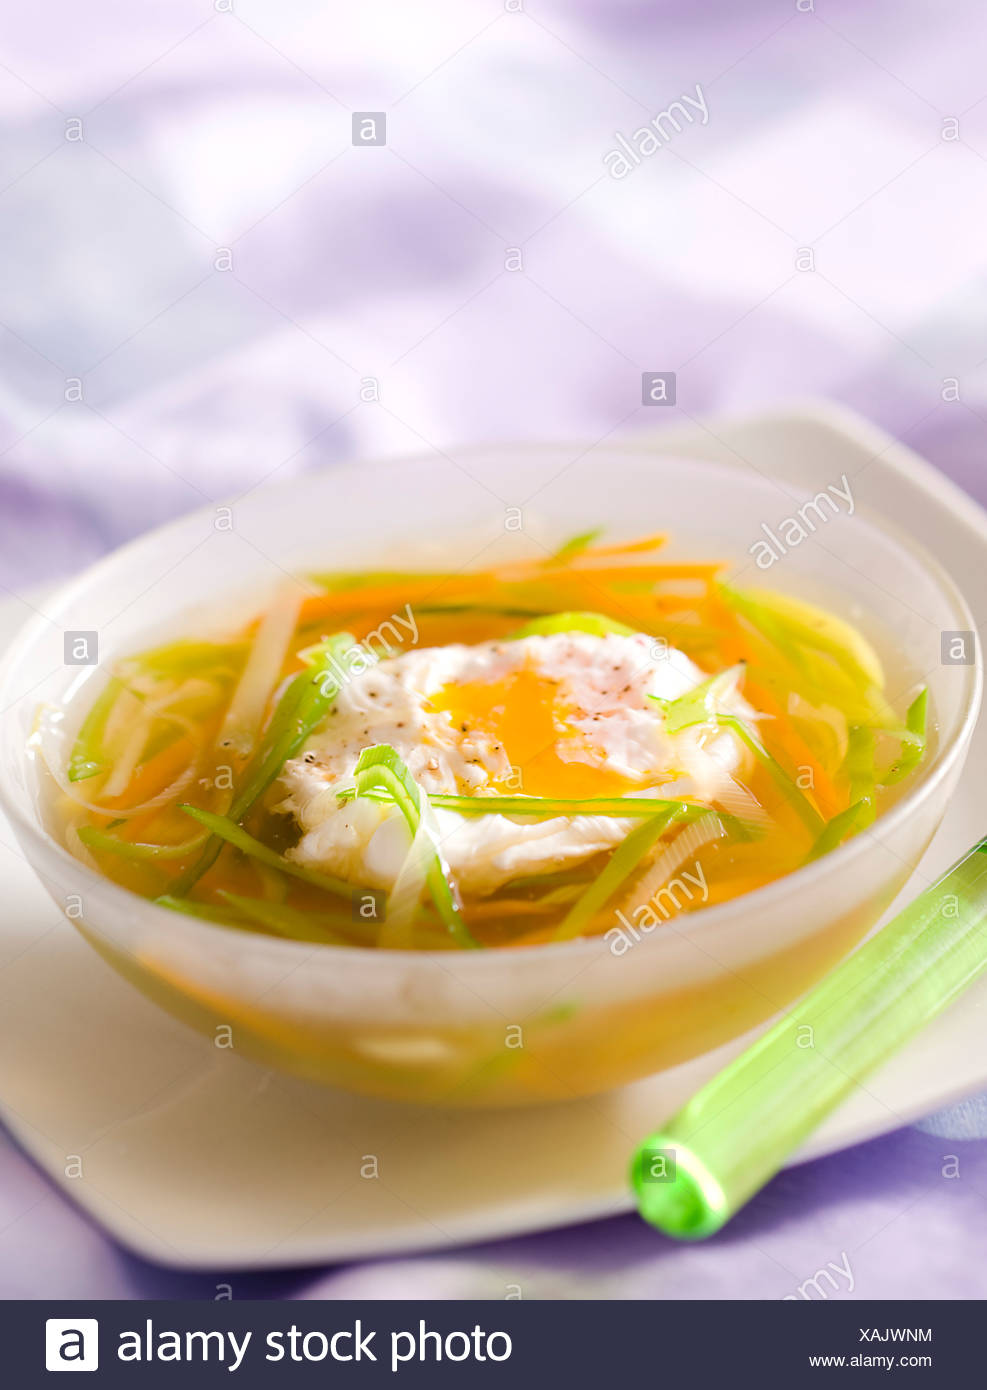 Vegetable Soup and Egg - Stock Image